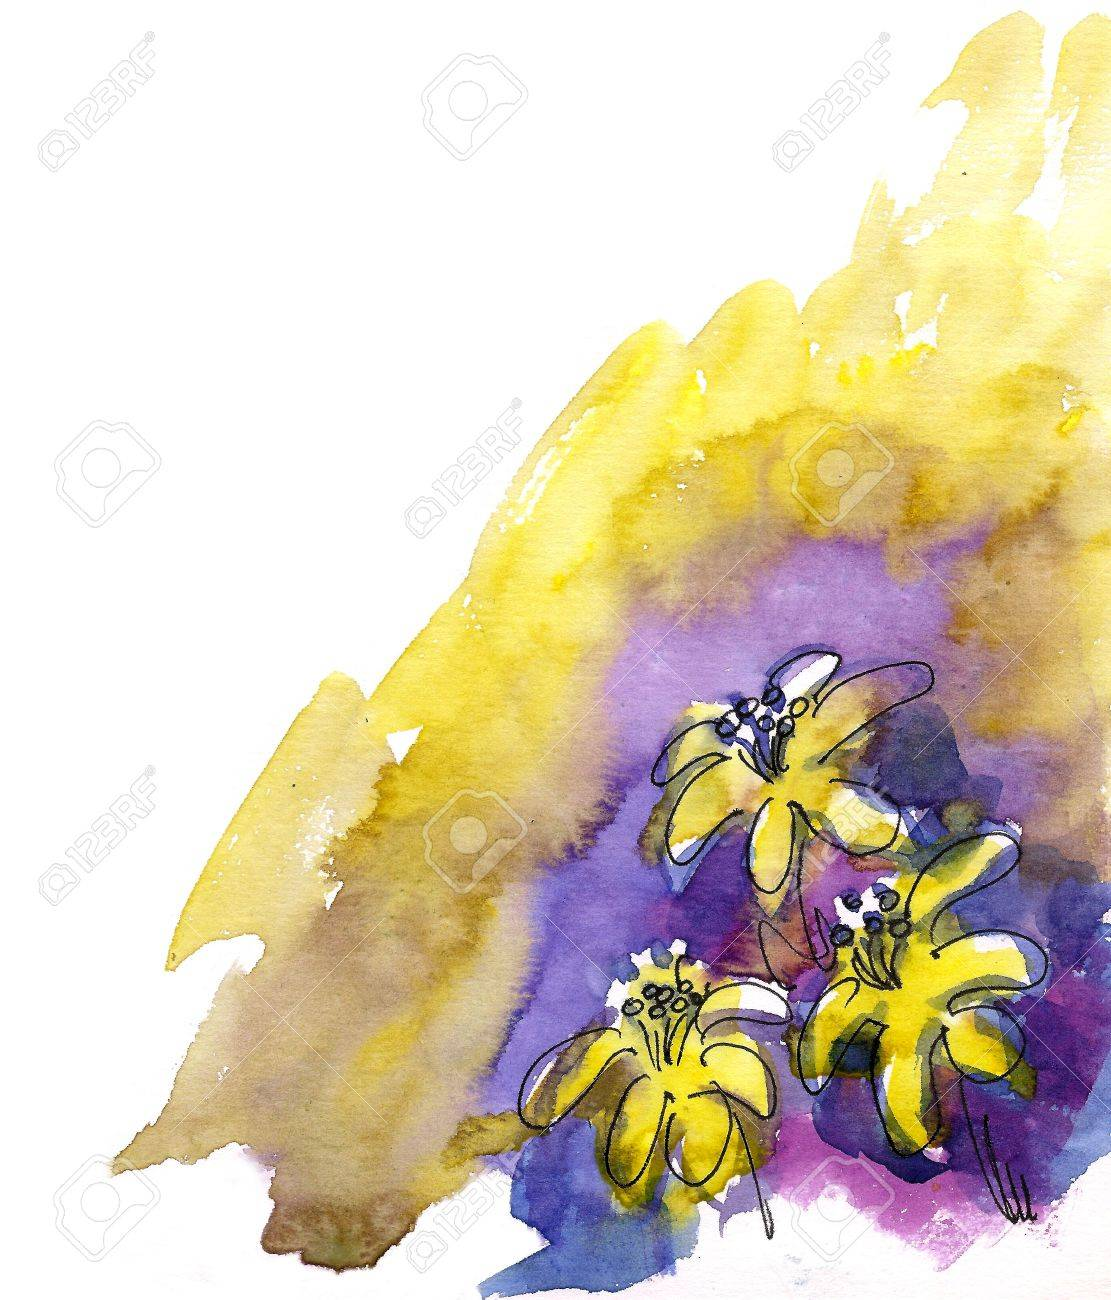 Artistic flowers painted in watercolor  isolated on white Stock Photo - 16441432